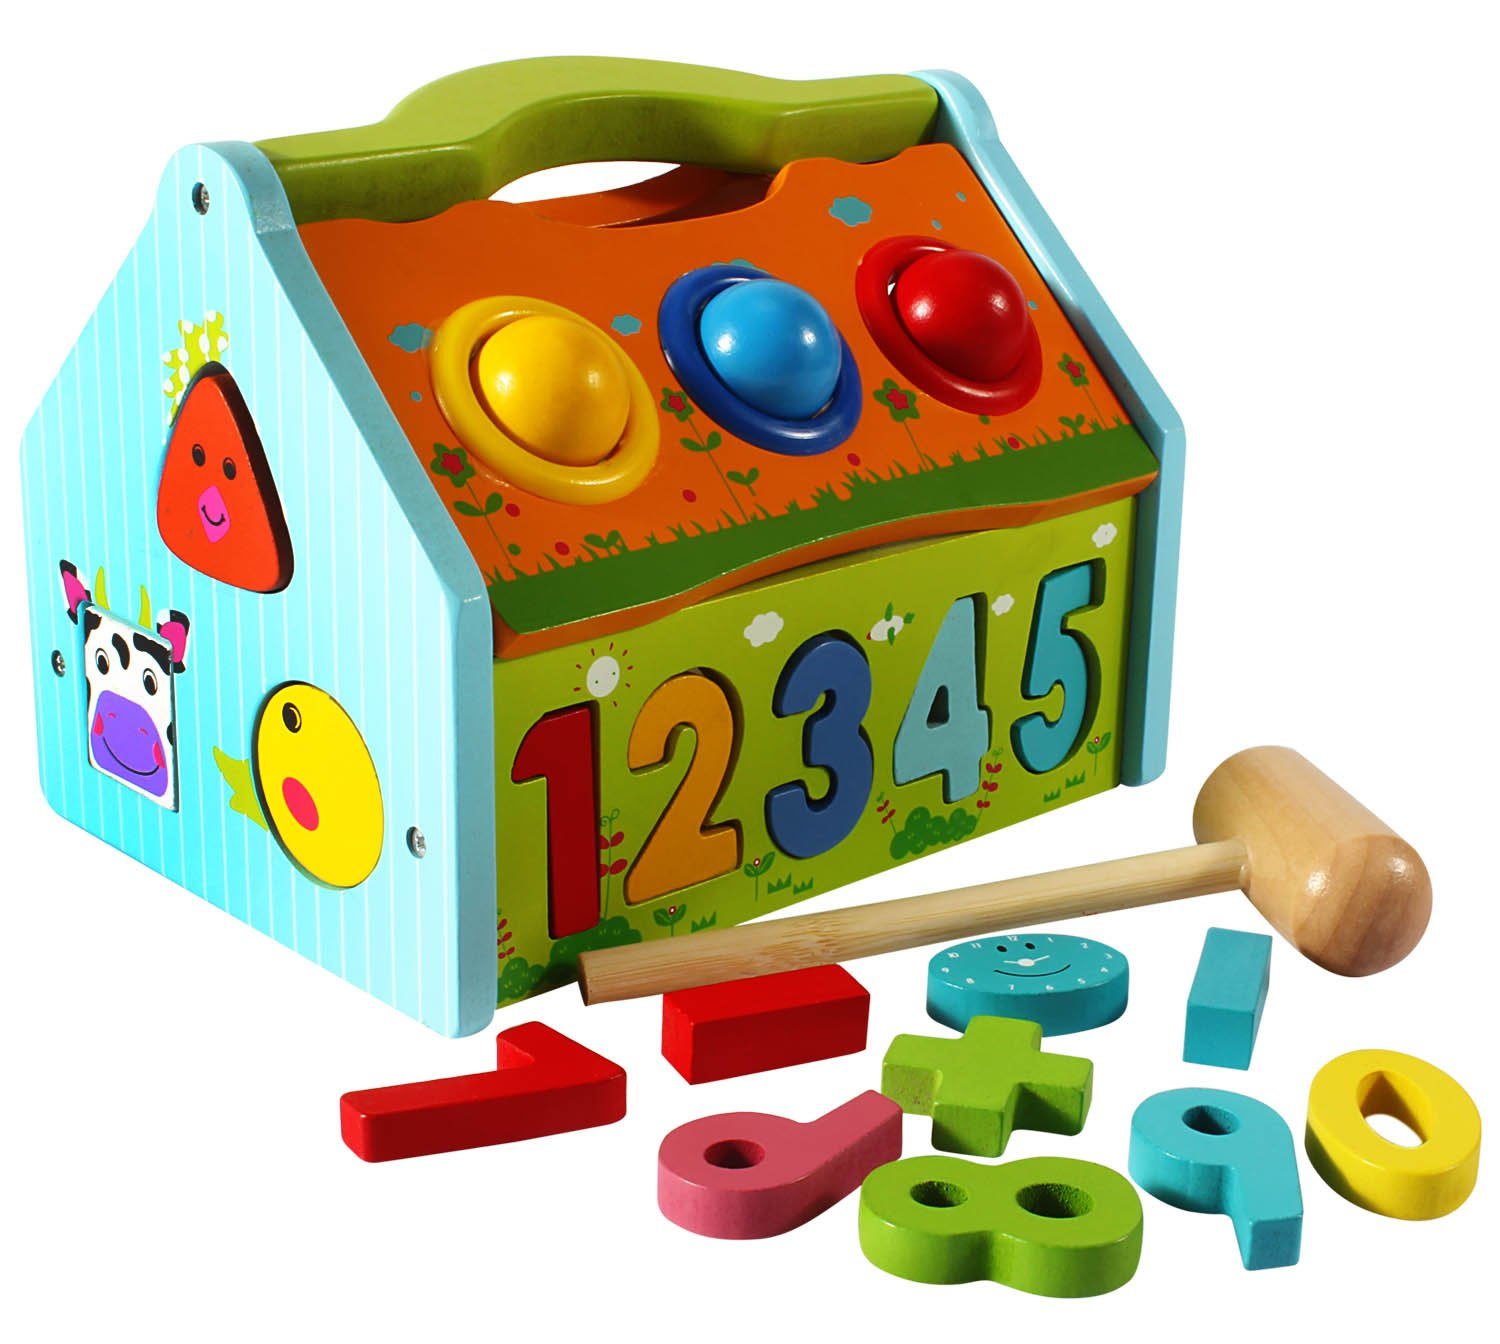 Buy Tongmukuwan Multi Functional Wooden Activity Smart House